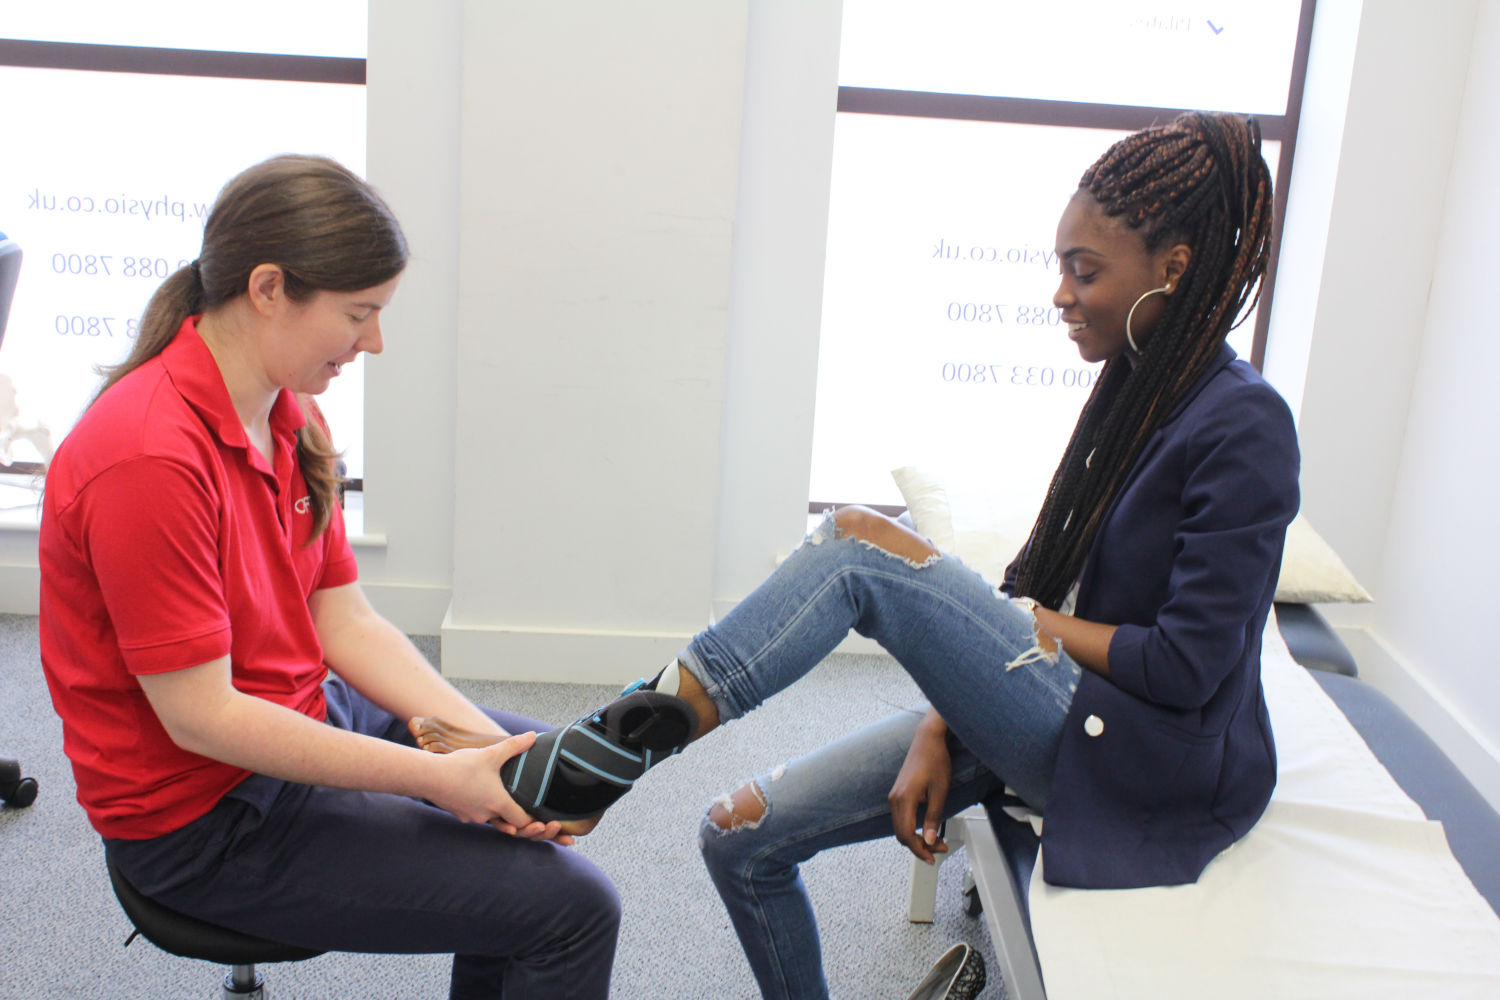 Orthotics professional holding patient in ankle support.